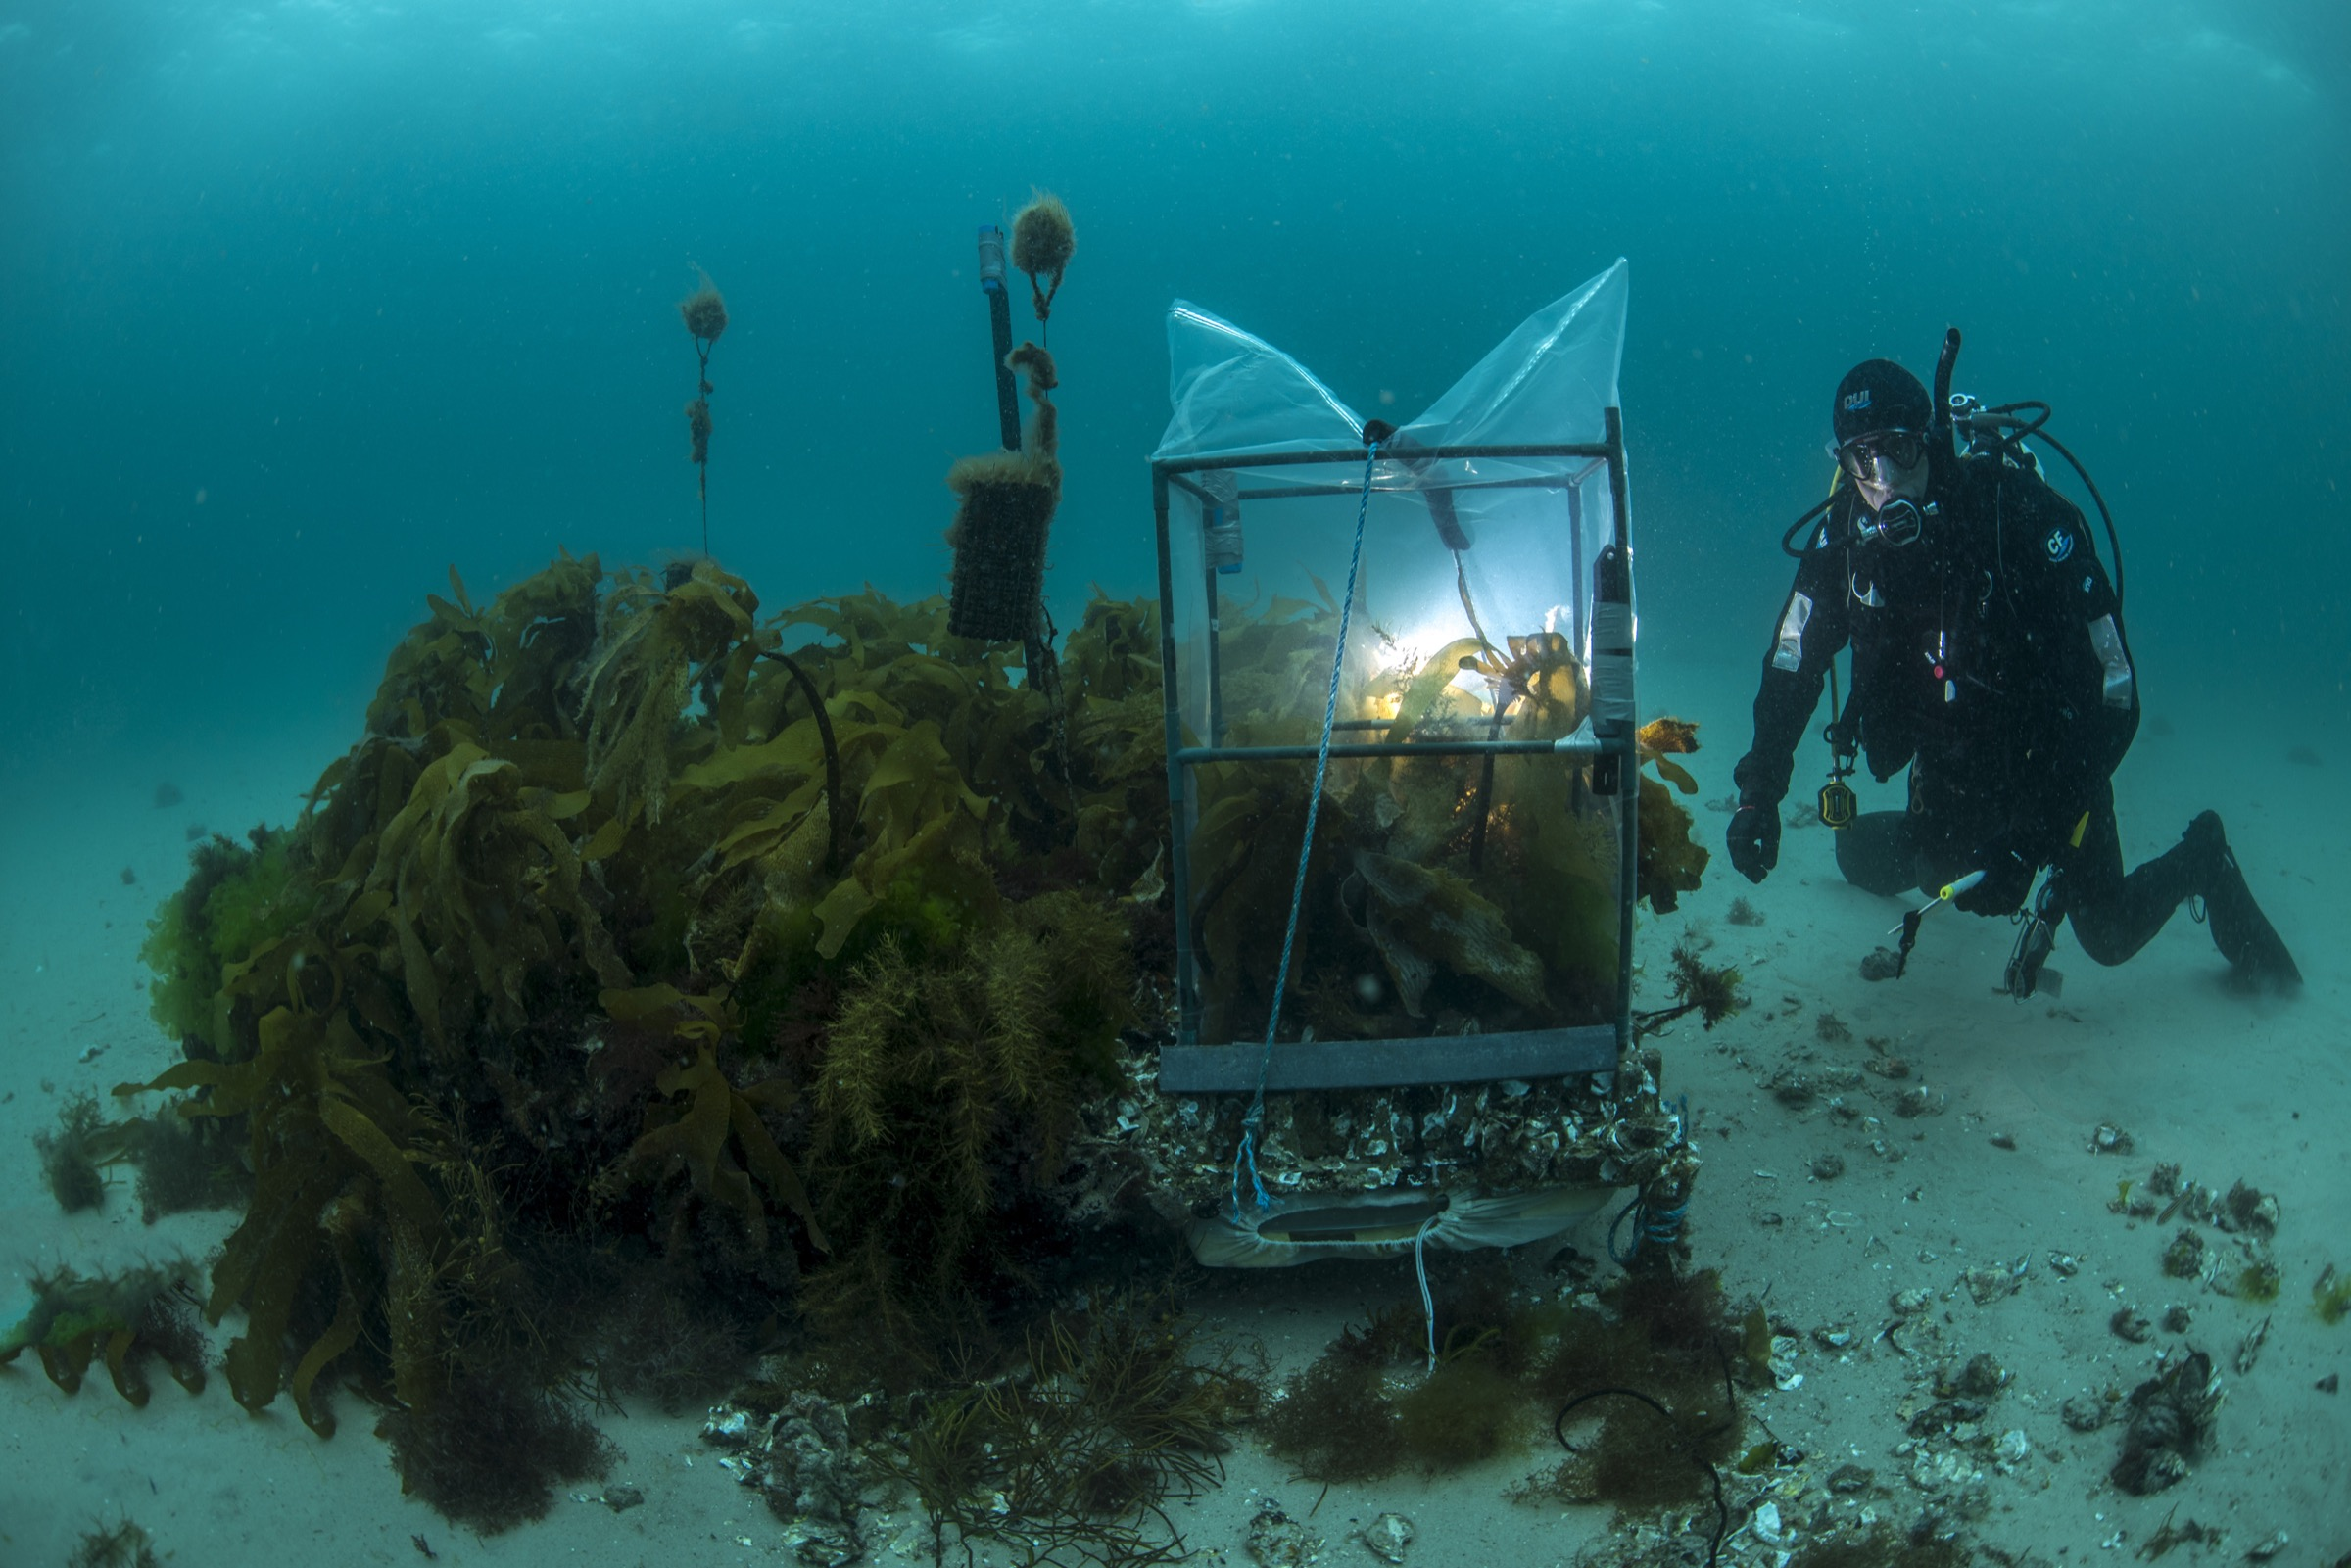 Marine ecologist Craig Johnson dives down to check on a patch of transplanted kelp off Maria Island, Tasmania. The tent over some of the transplants measures photosynthetic rate, an indicator of health.